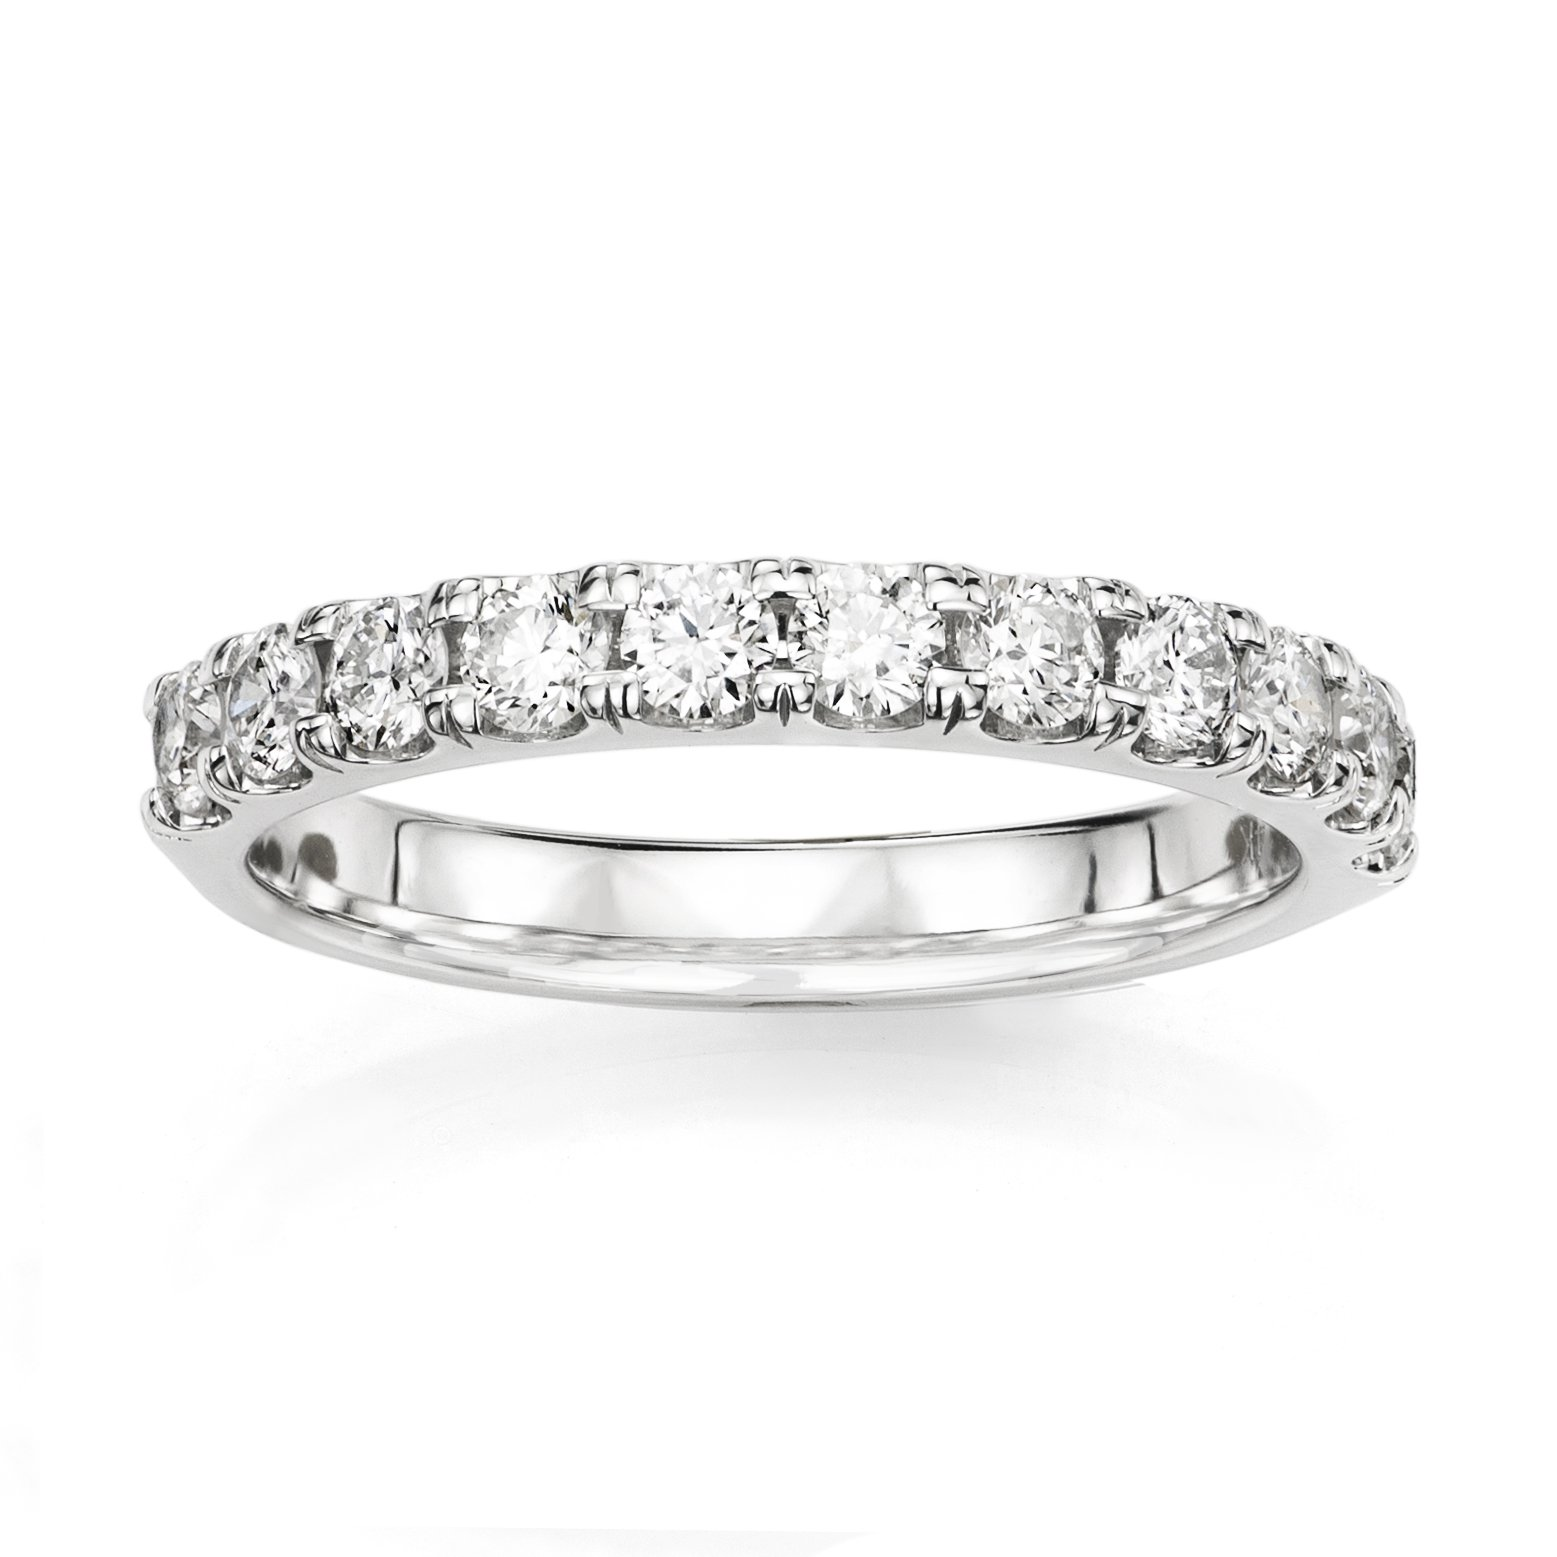 14KT White Gold 0.5ct G-I SI1/SI2 Shared Prong Machine Set Wedding Ring